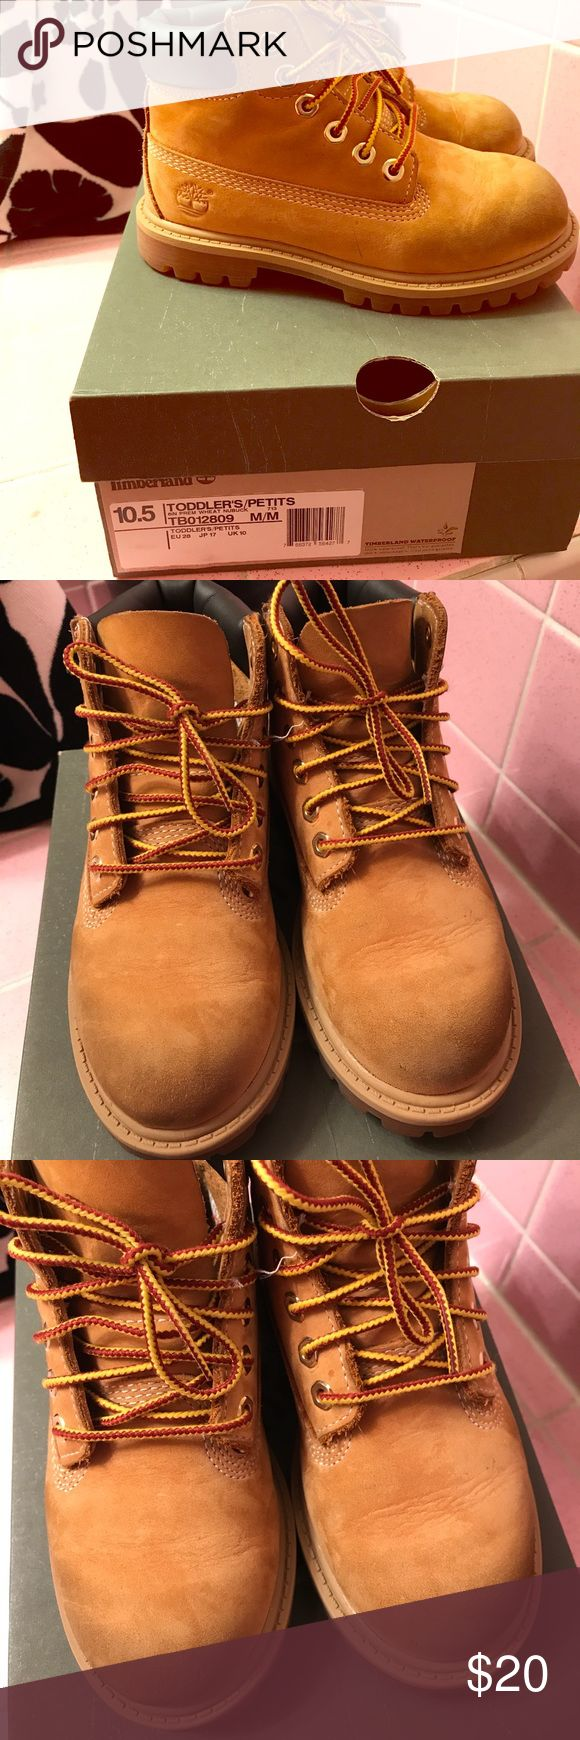 Toddler Timberlands 10.5 My son loves these boots he outgrew them they are a size 10.5 please see photos for blue from his jeans they are price accordingly thank you Timberland Shoes Boots